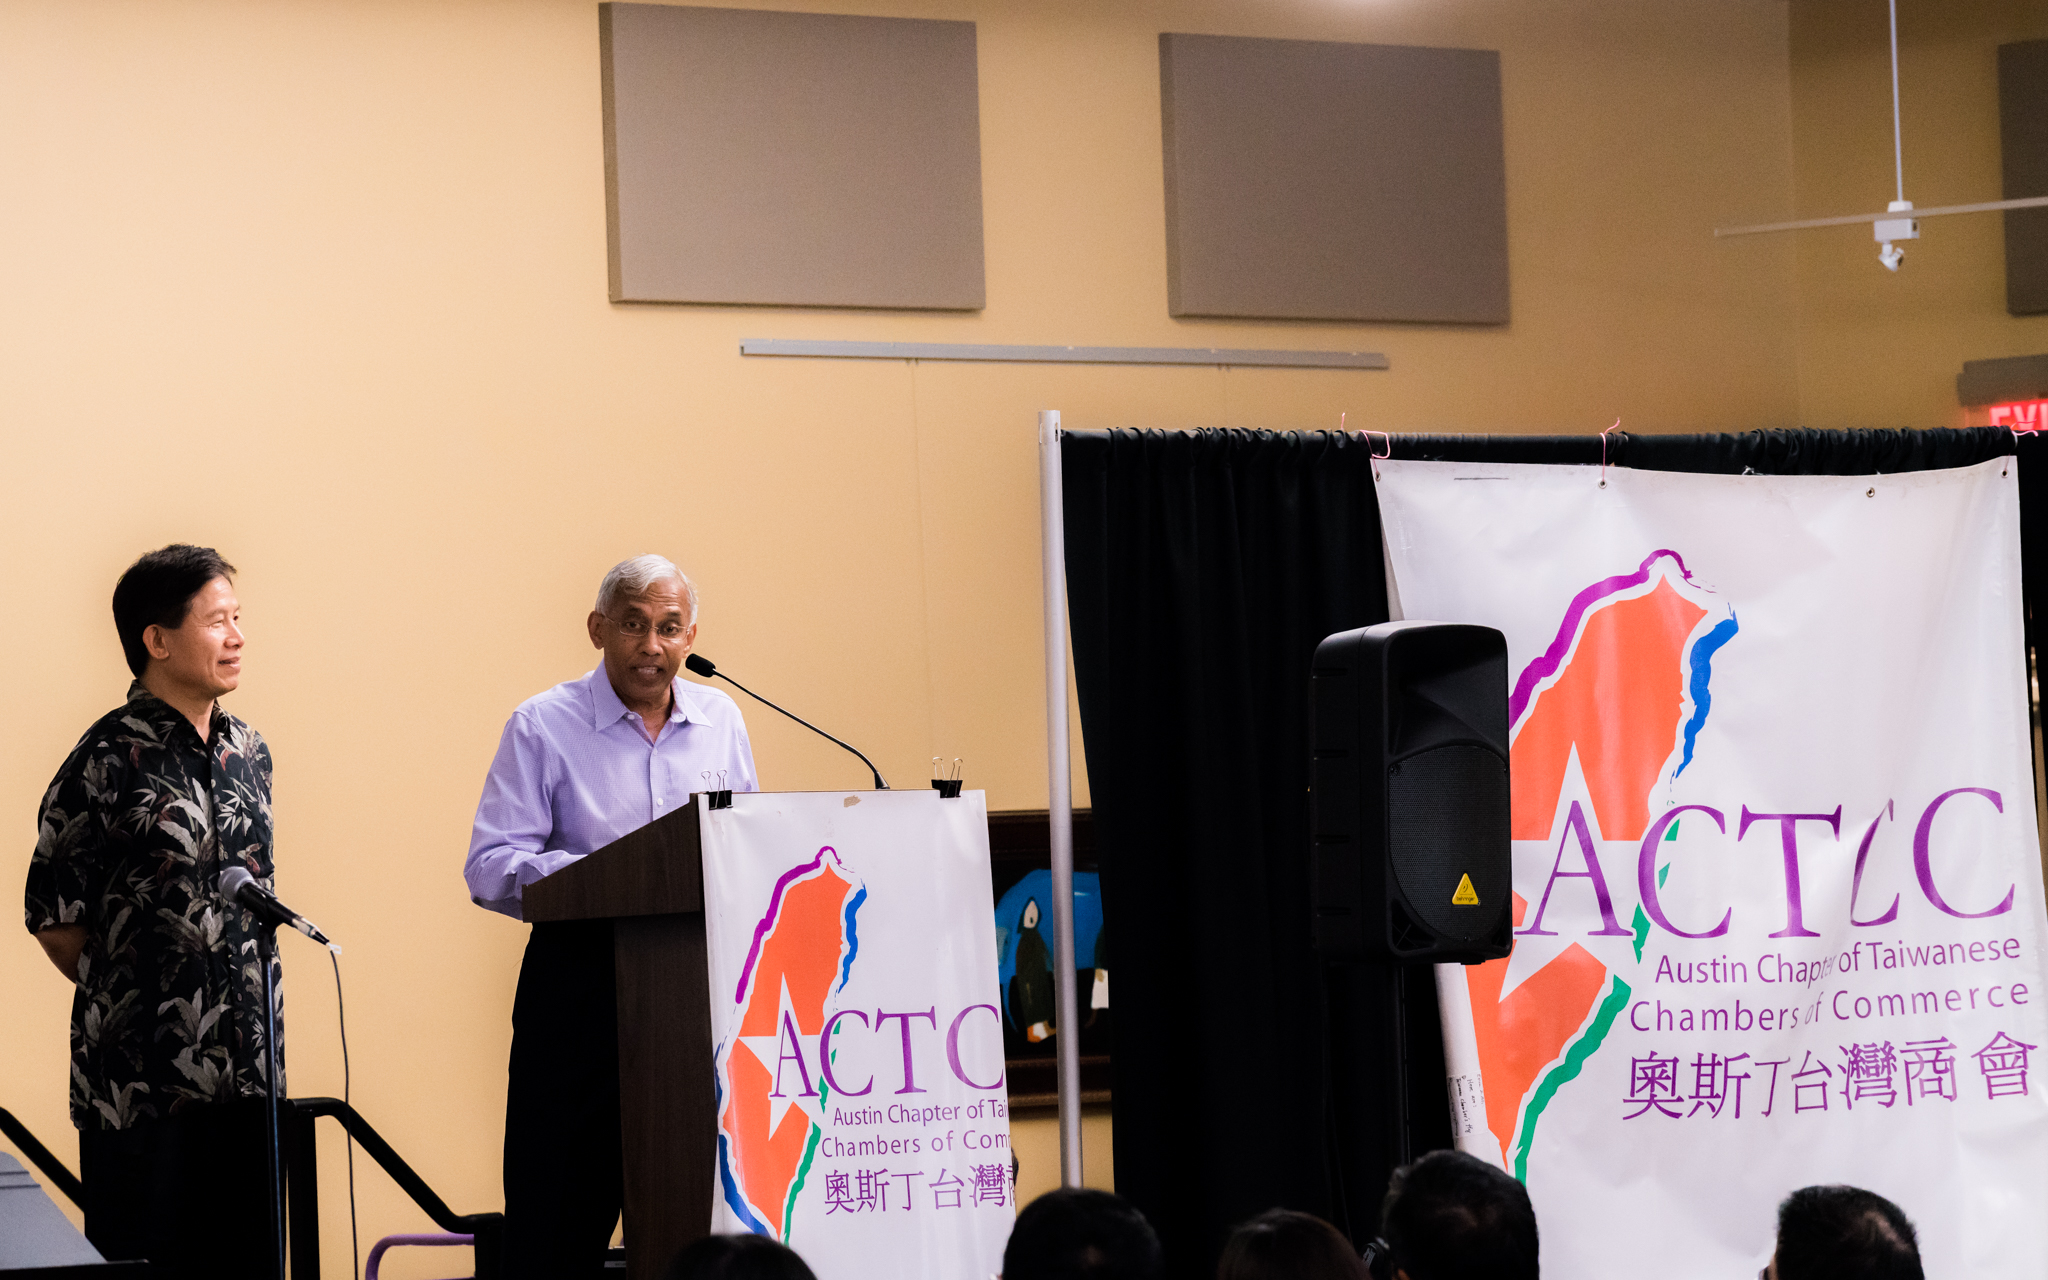 https://0201.nccdn.net/4_2/000/000/017/e75/29OCT2016---ACTCC-TW-National-Day-Celebration-at-AARC-16.JPG